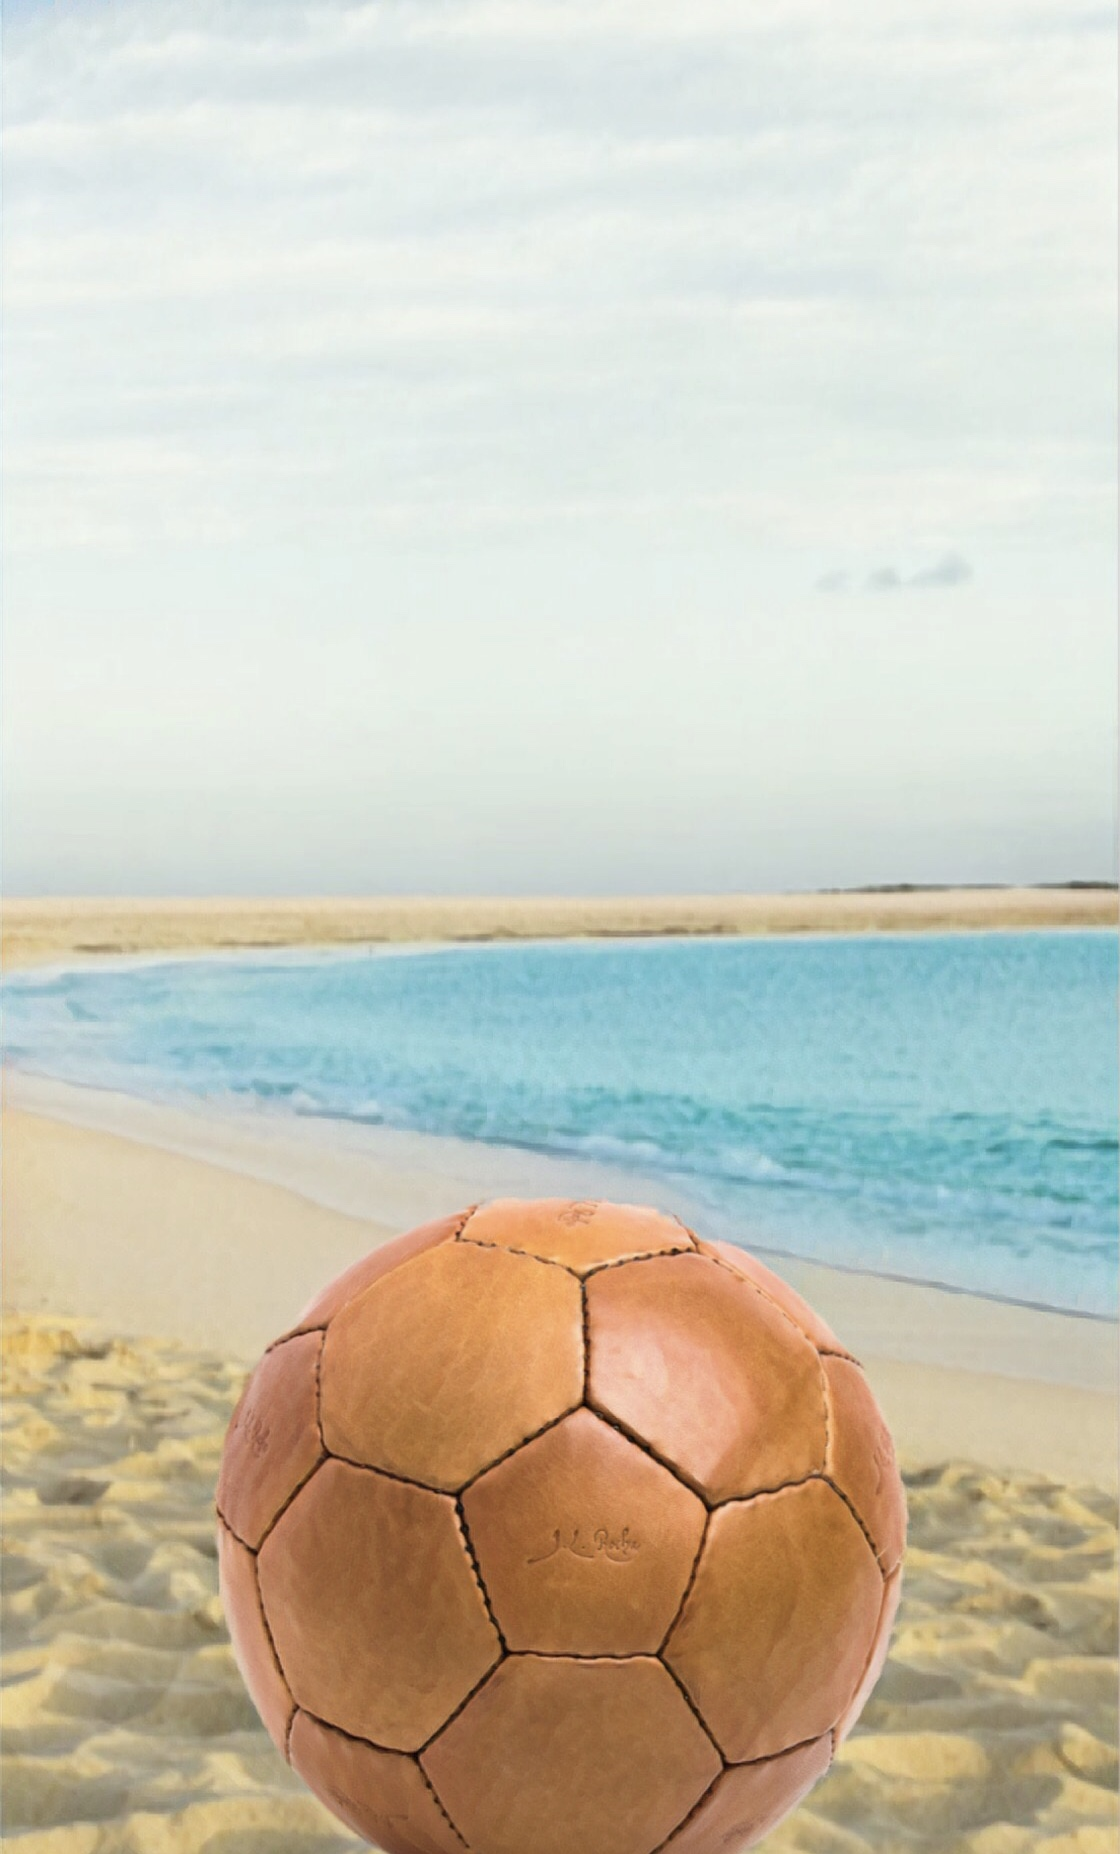 Vintage 1950's Soccer Ball - What's all work without a little play? Sometimes a vacation is more than just about a spa day and some pampering. Beach soccer is the perfect way to pump up the heart rate in style. Take your collectors edition soccer ball and show them how a dapper man dribbles.